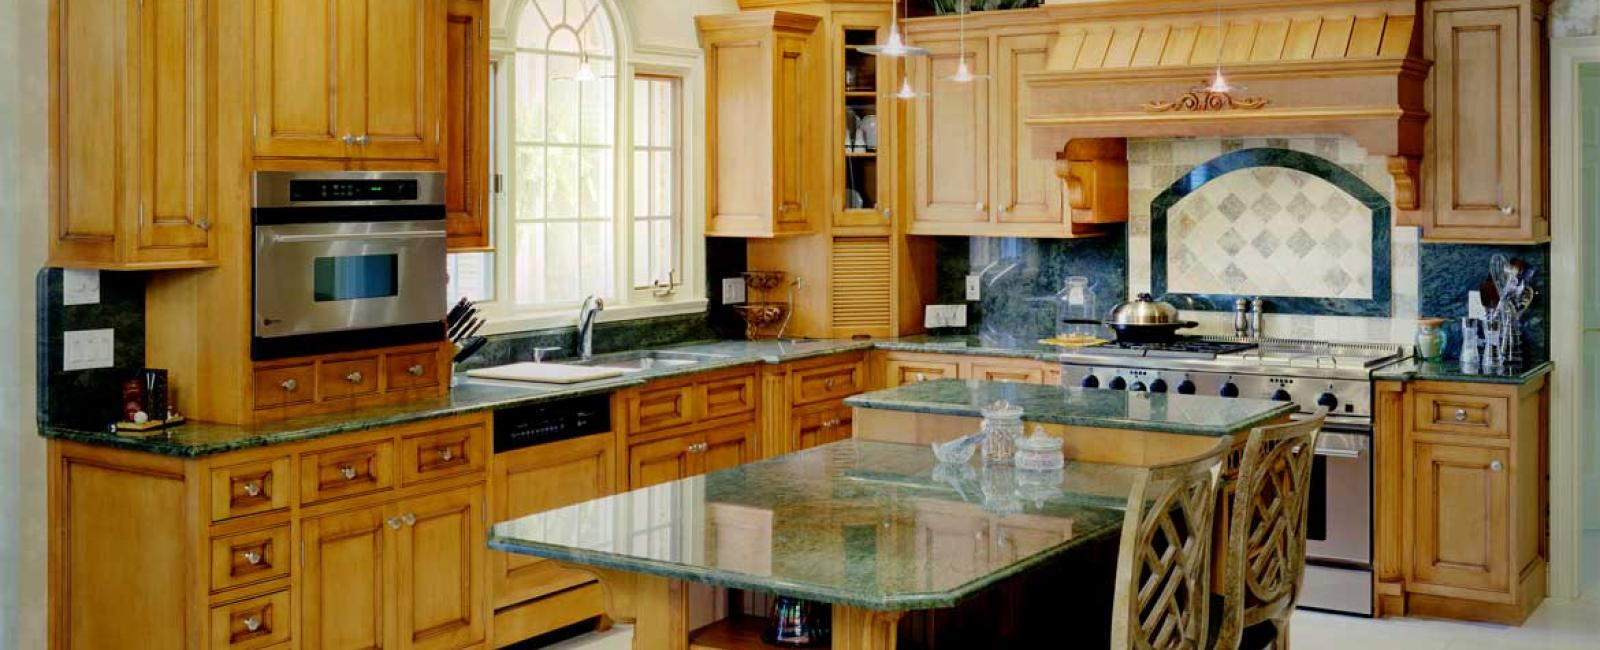 Zicka Kitchen After Remodel